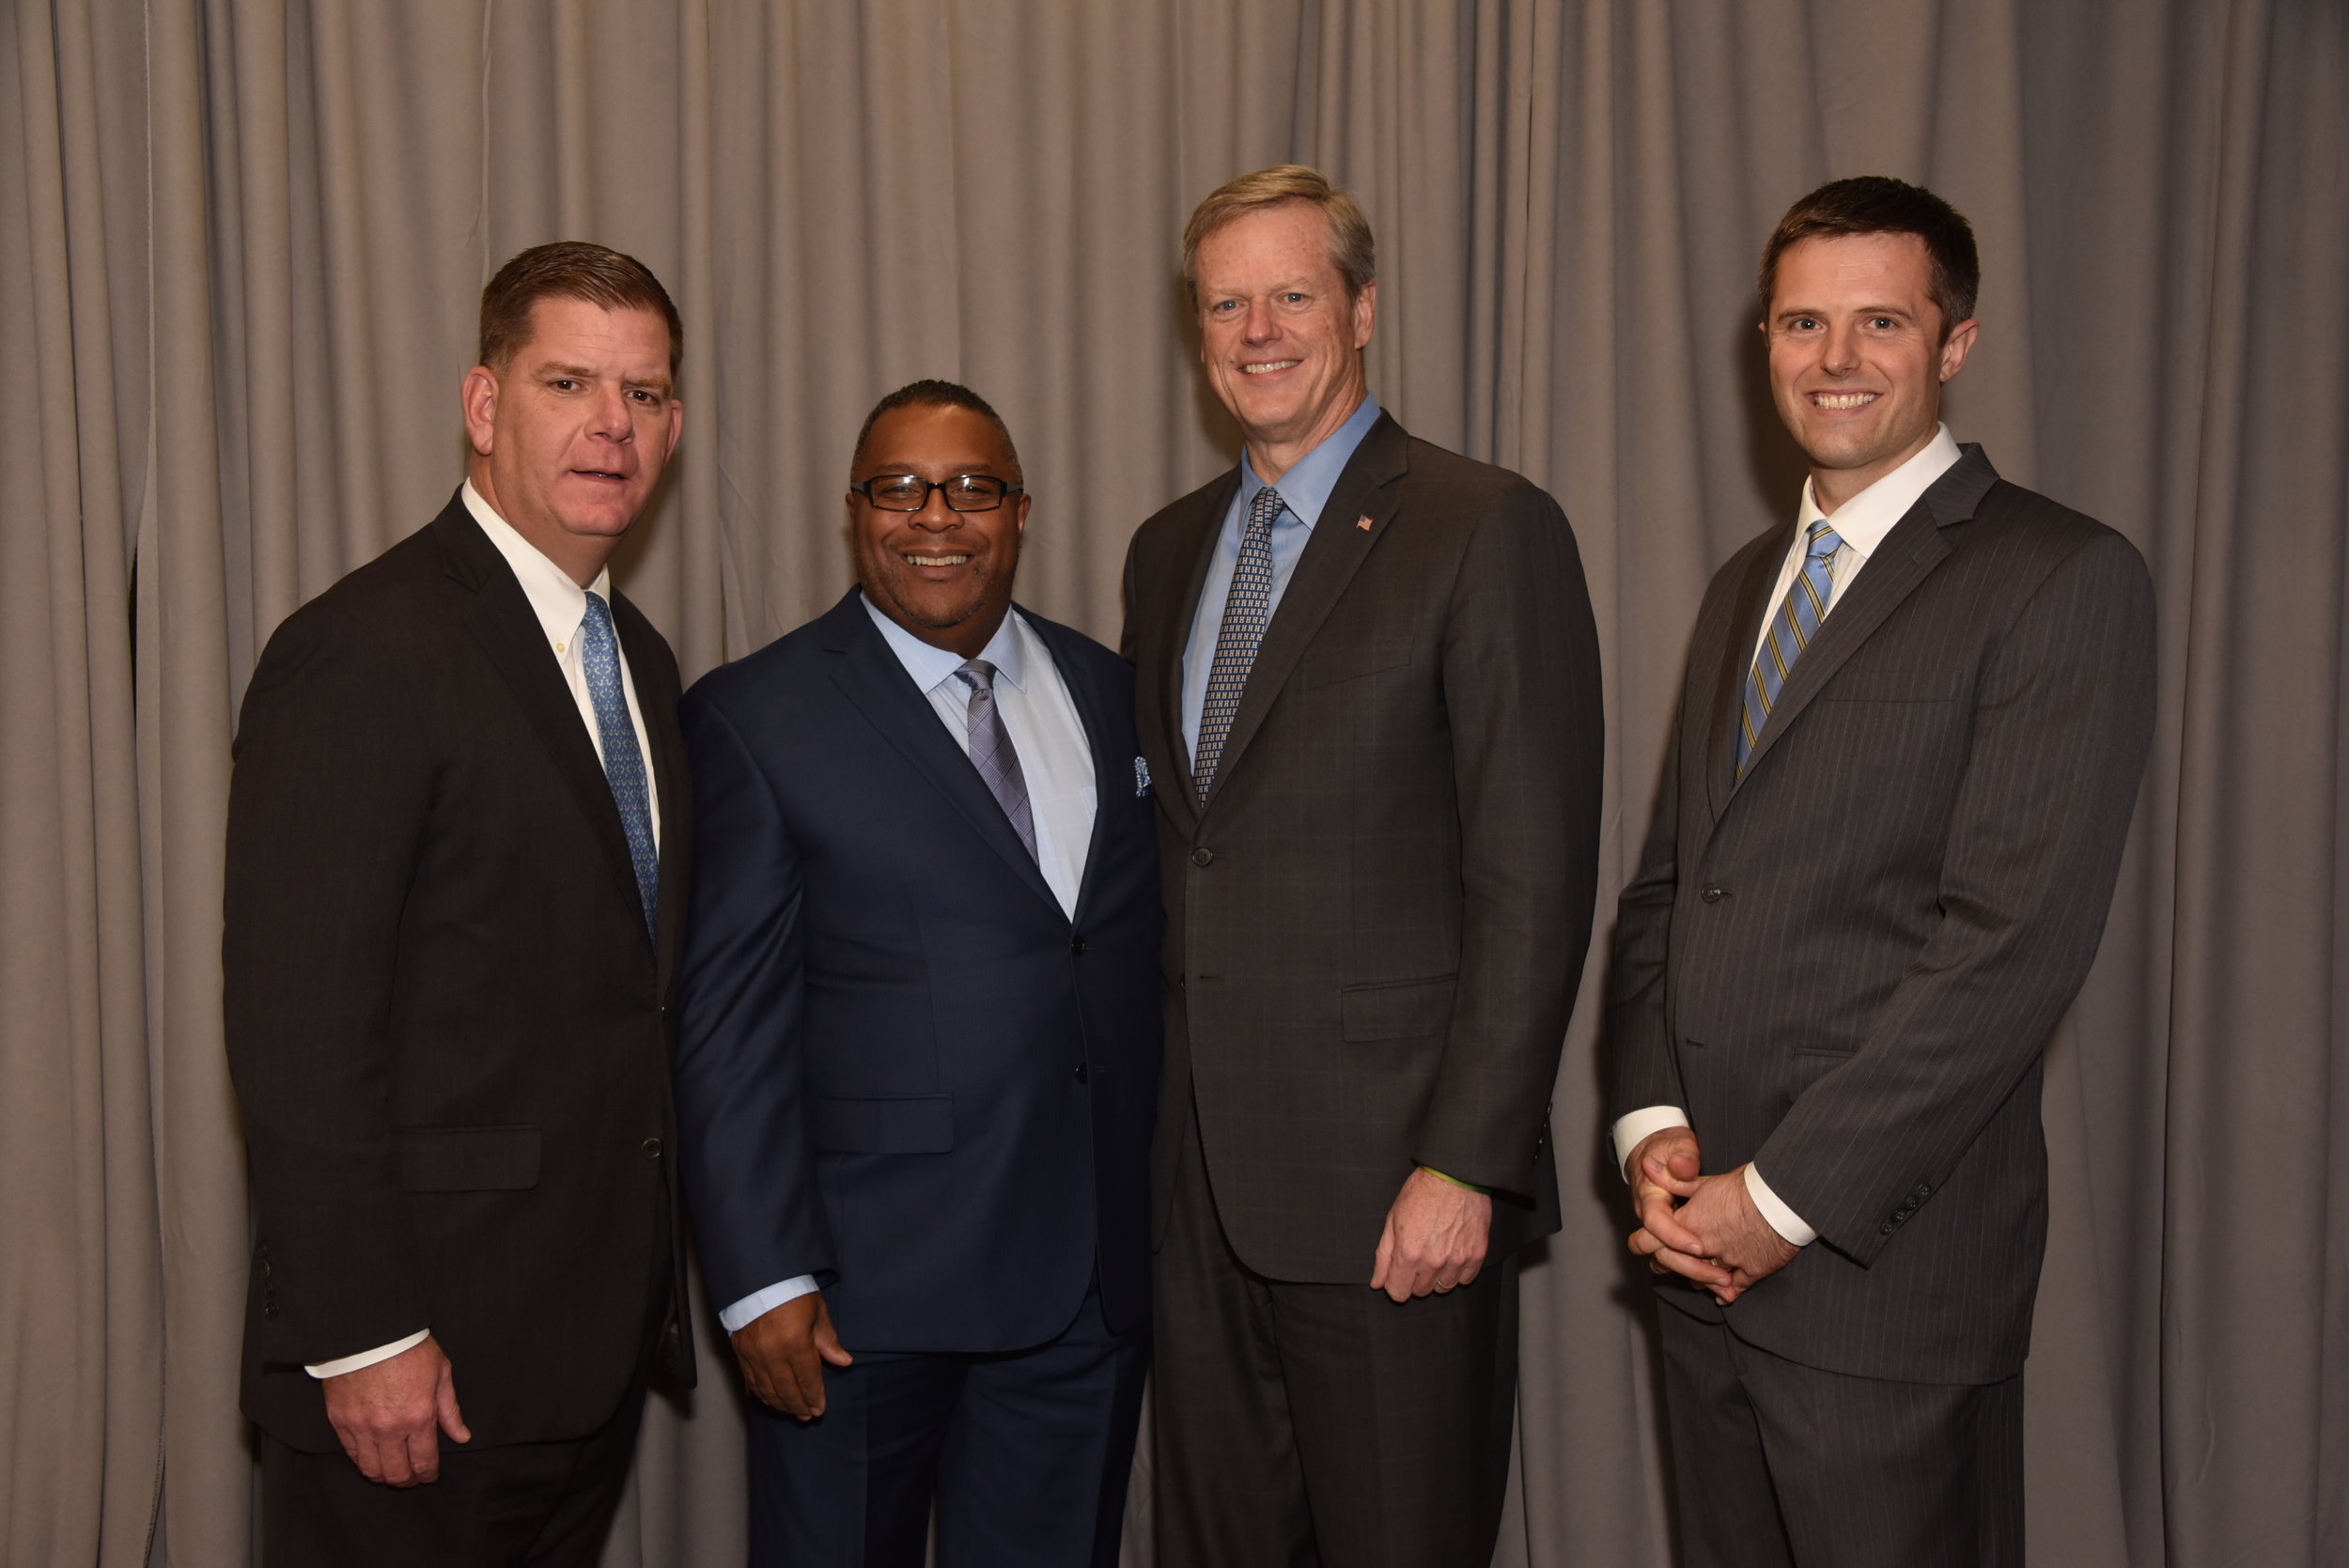 Our newly re-elected Governor Charlie Baker spoke of the state's support for many of our programs and introduced our inaugural Community Activist Award recipient: Robert Lewis, Jr. Robert spoke of this organization that raised him.